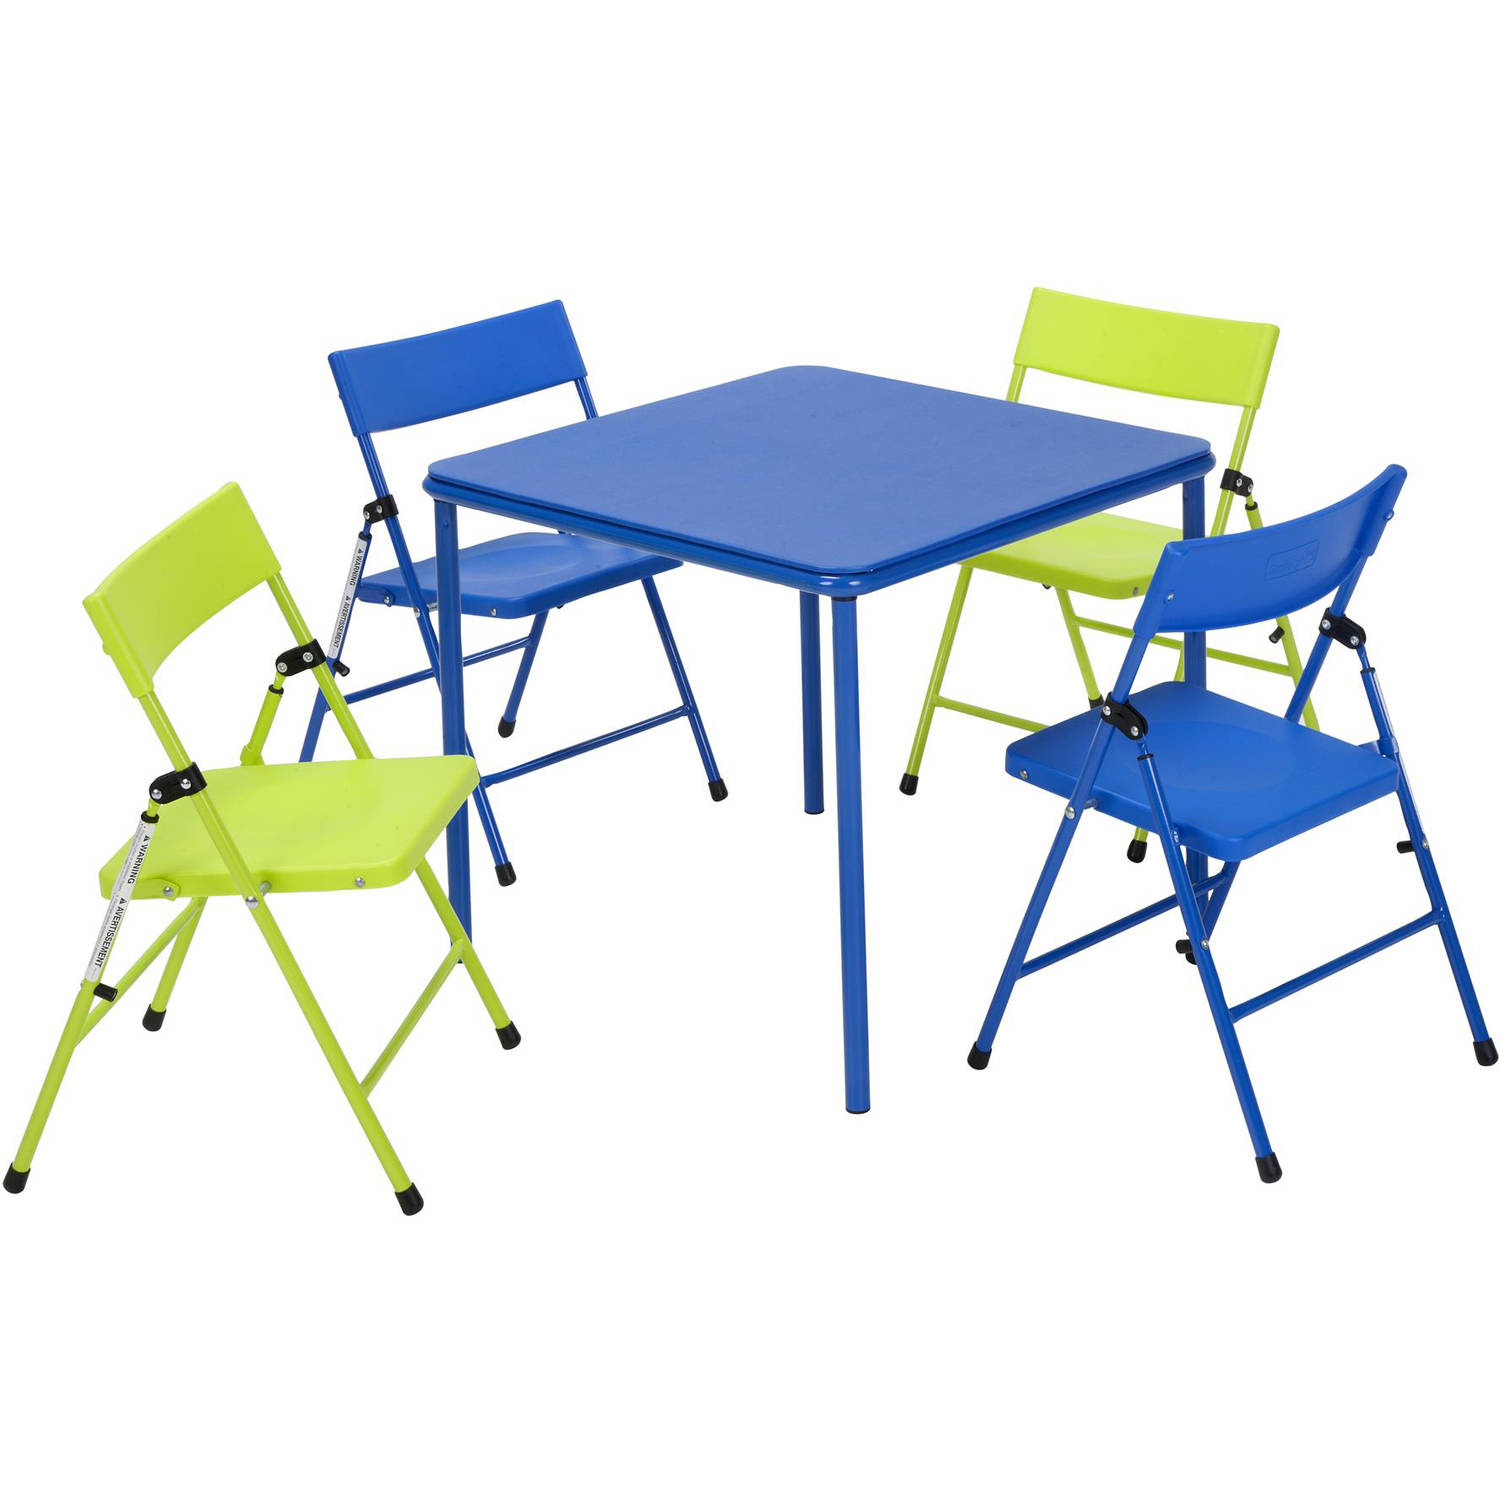 Cosco 5-Piece Kidu0027s Table and Chair Set Multiple Colors  sc 1 st  Corporate Perks Lite Perks at Work & COSCO Kids 2pc Activity Table and Chair Orange Chair Blue Table ...